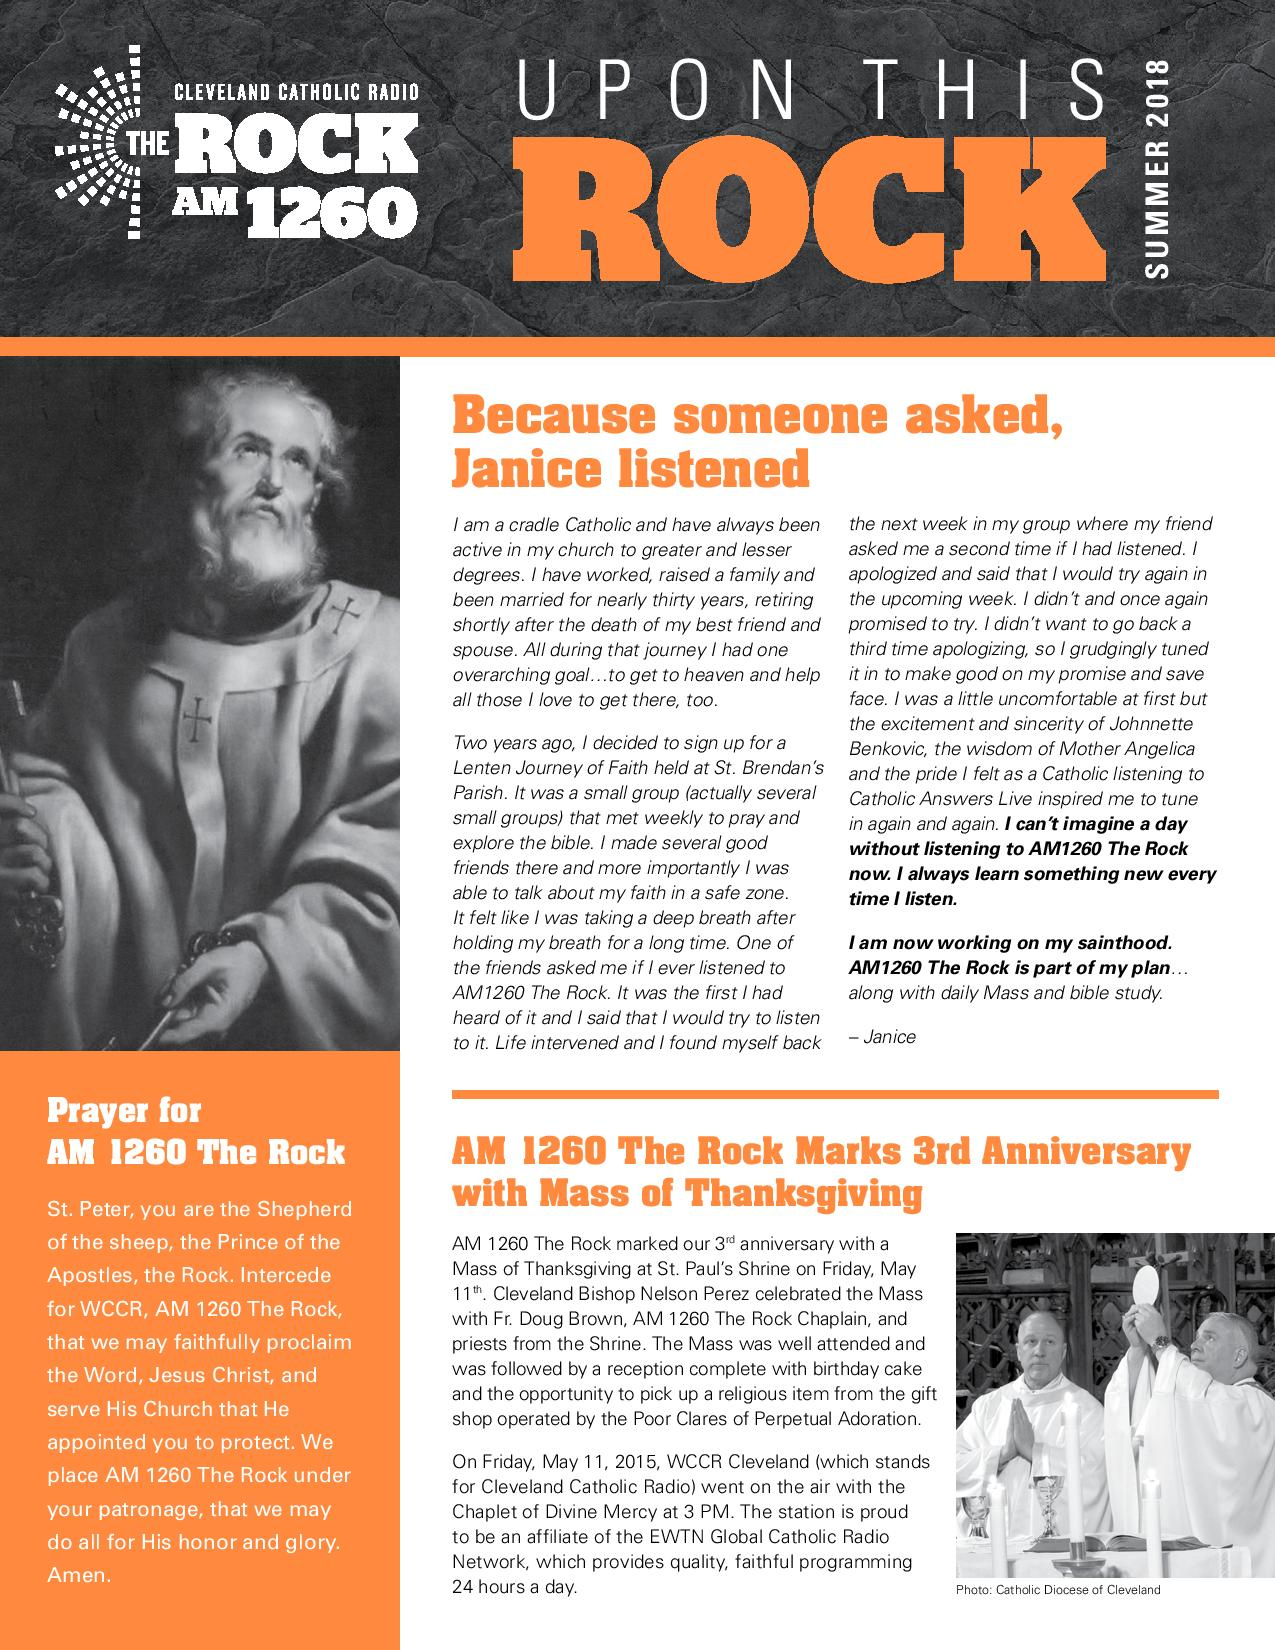 """AM 1260 The Rock Premieres """"Upon This Rock"""" Newsletter"""